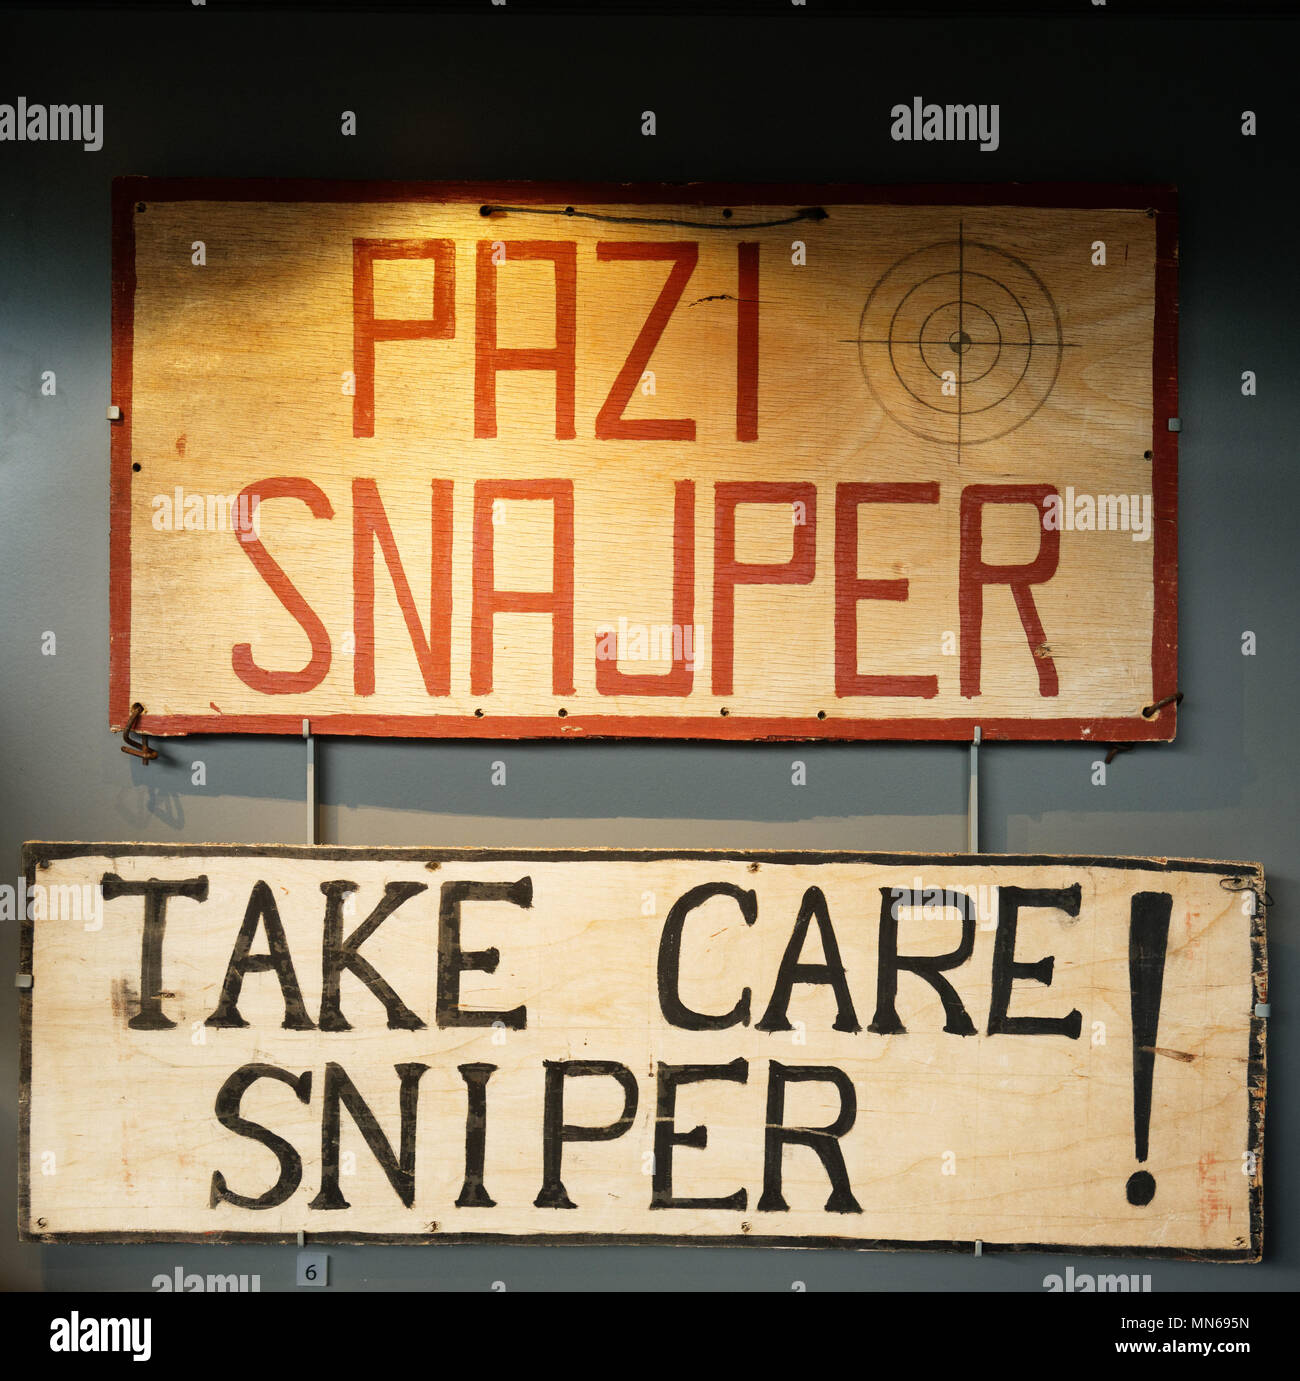 A 'Take Care - Sniper' sign from Sniper Alley in Sarajevo during the Bosnian Wars - Stock Image